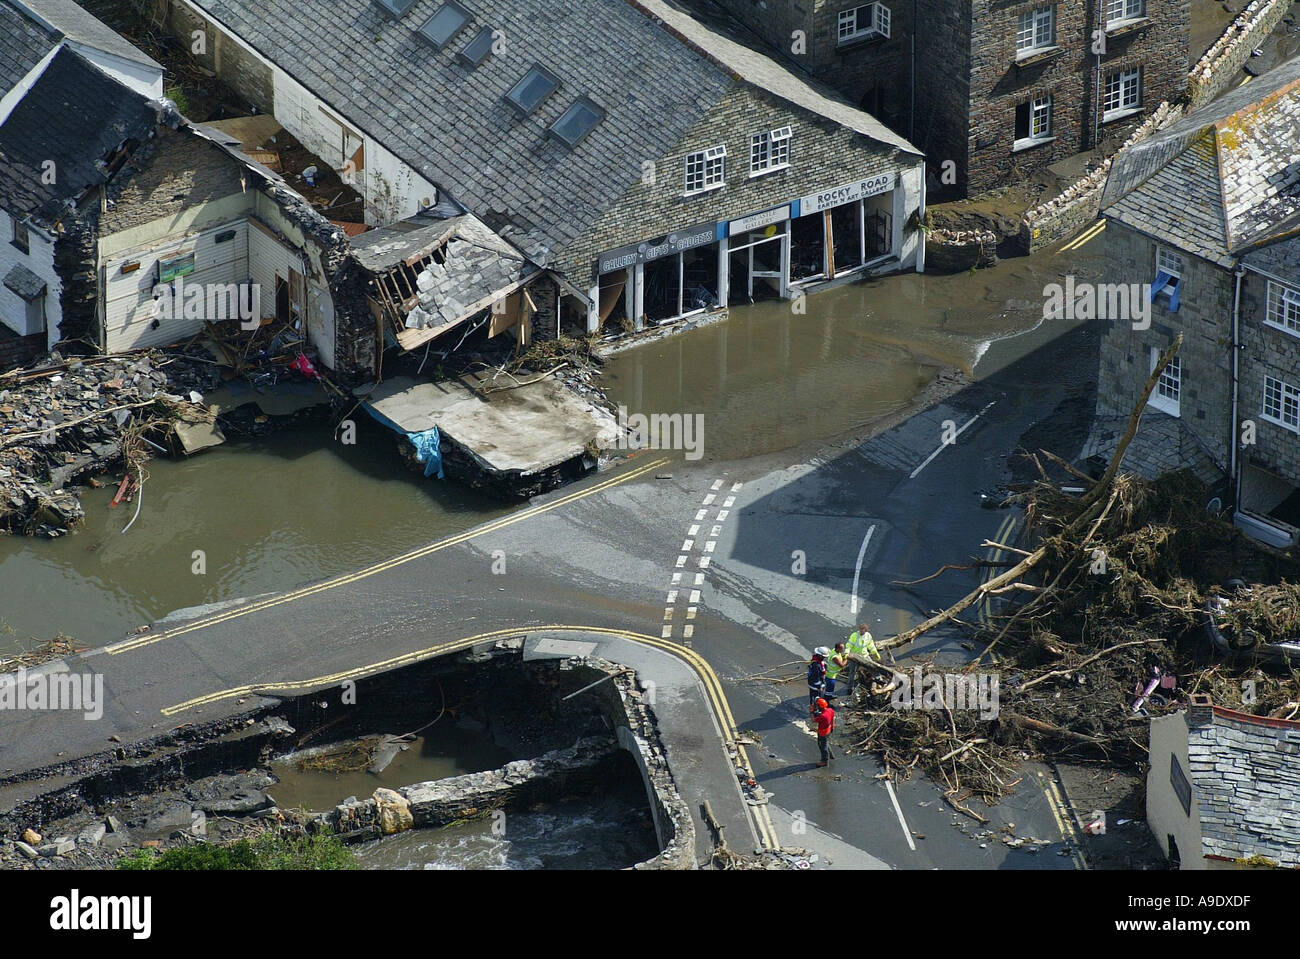 17 08 2004 The scene at Boscastle this morning after yesterday s devastating flood - Stock Image